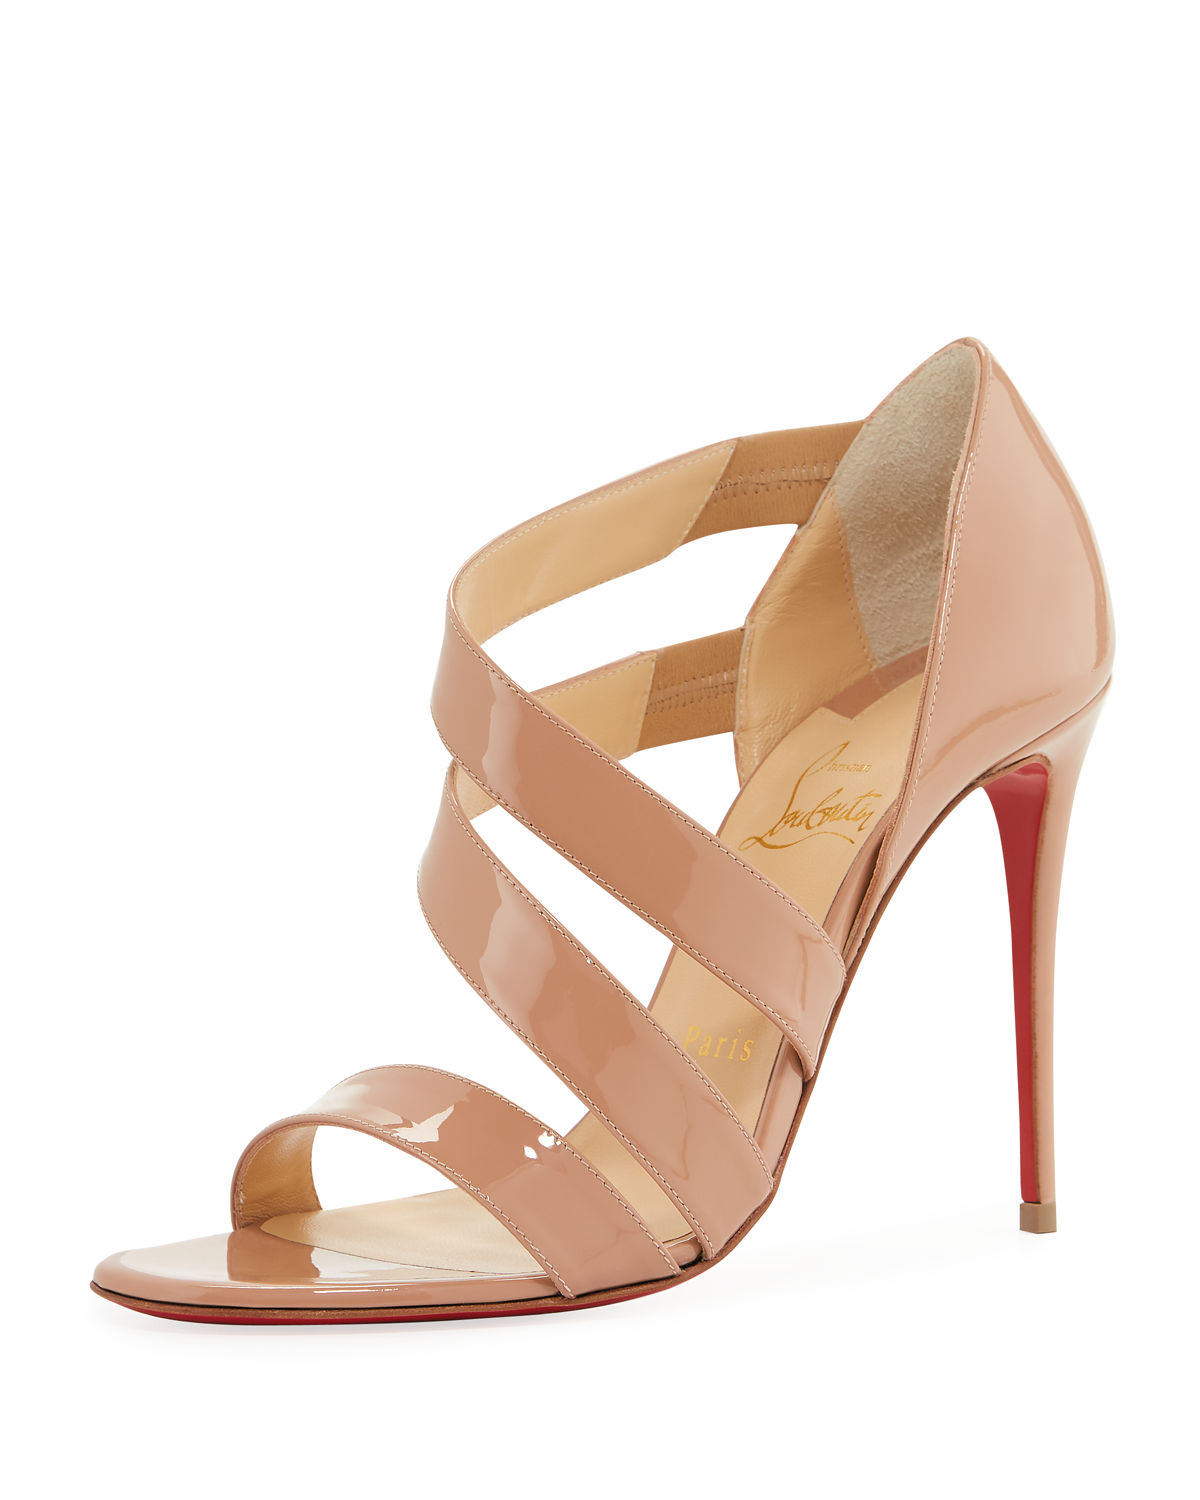 cbb84d3242a3 Christian Louboutin World Copine Asymmetrical Sandal In Nude Patent ...